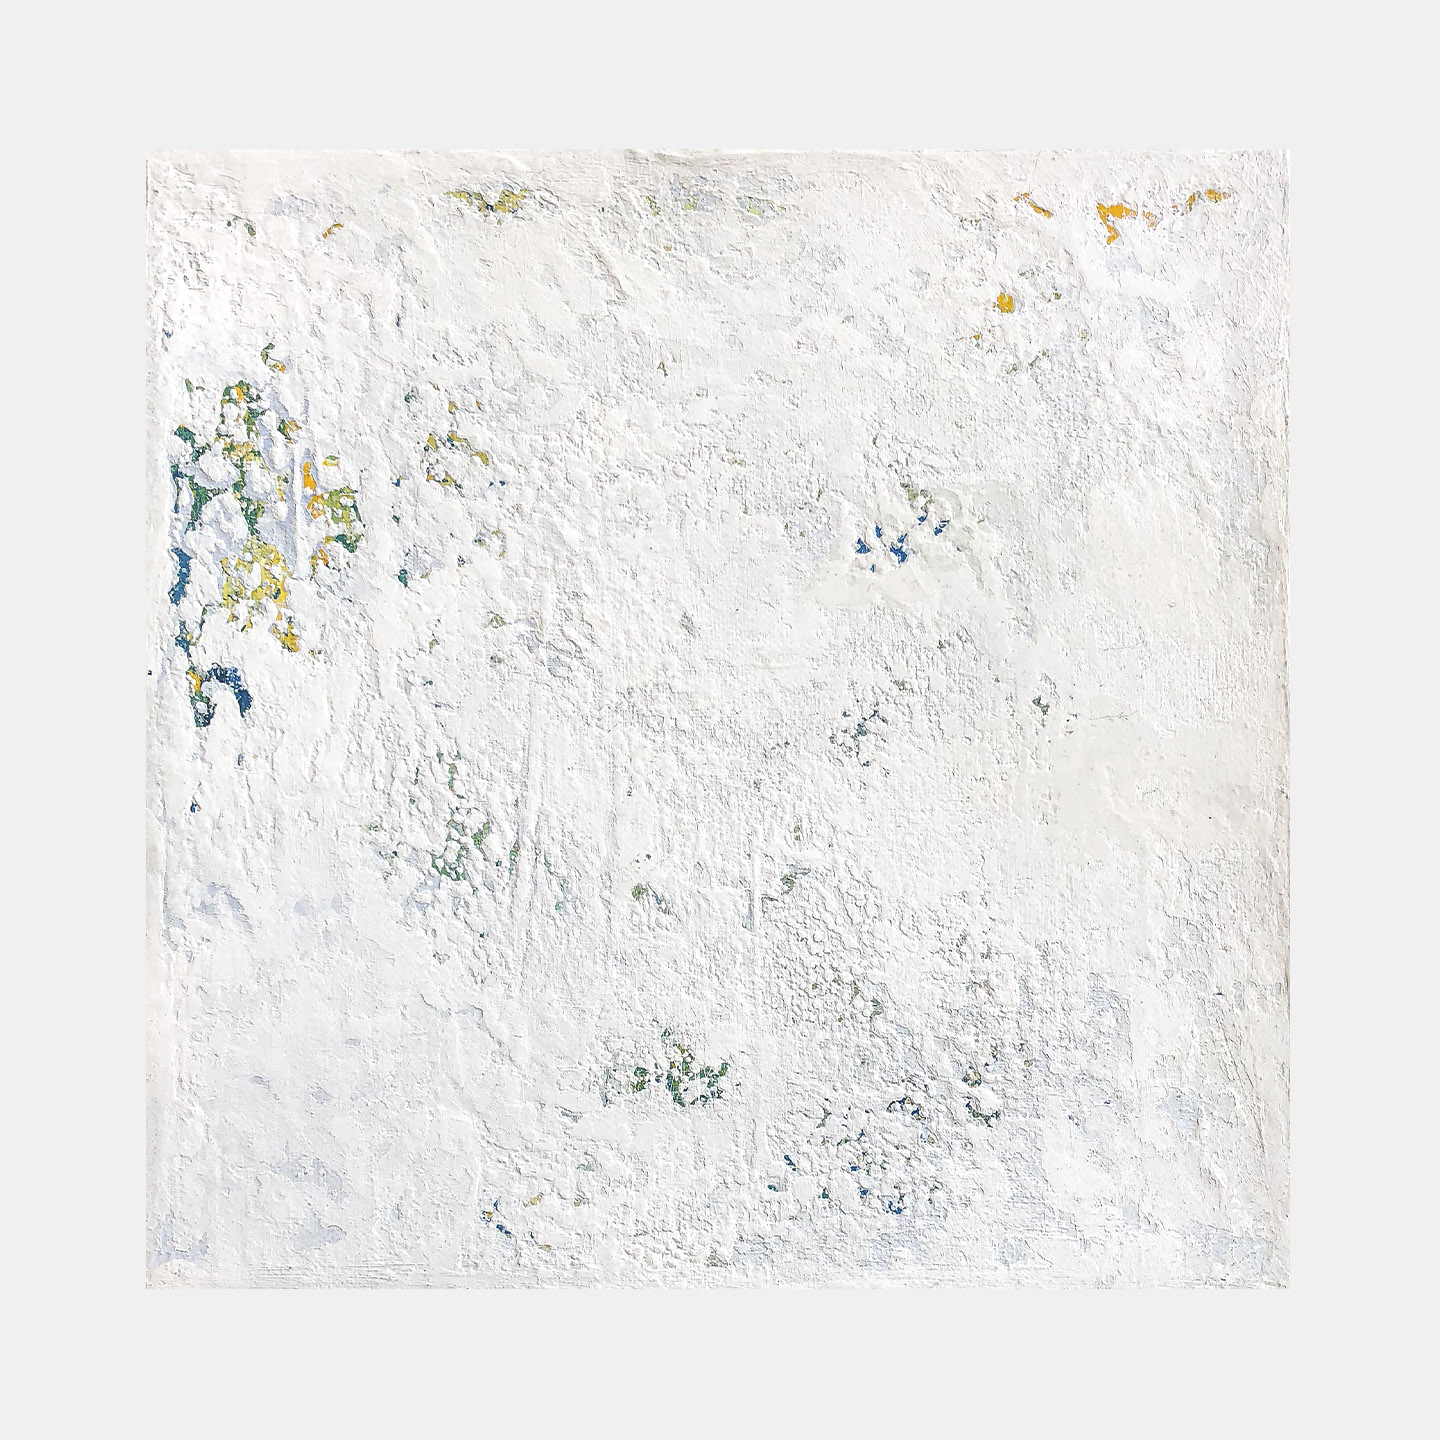 Untitled (White Painting 18-14)